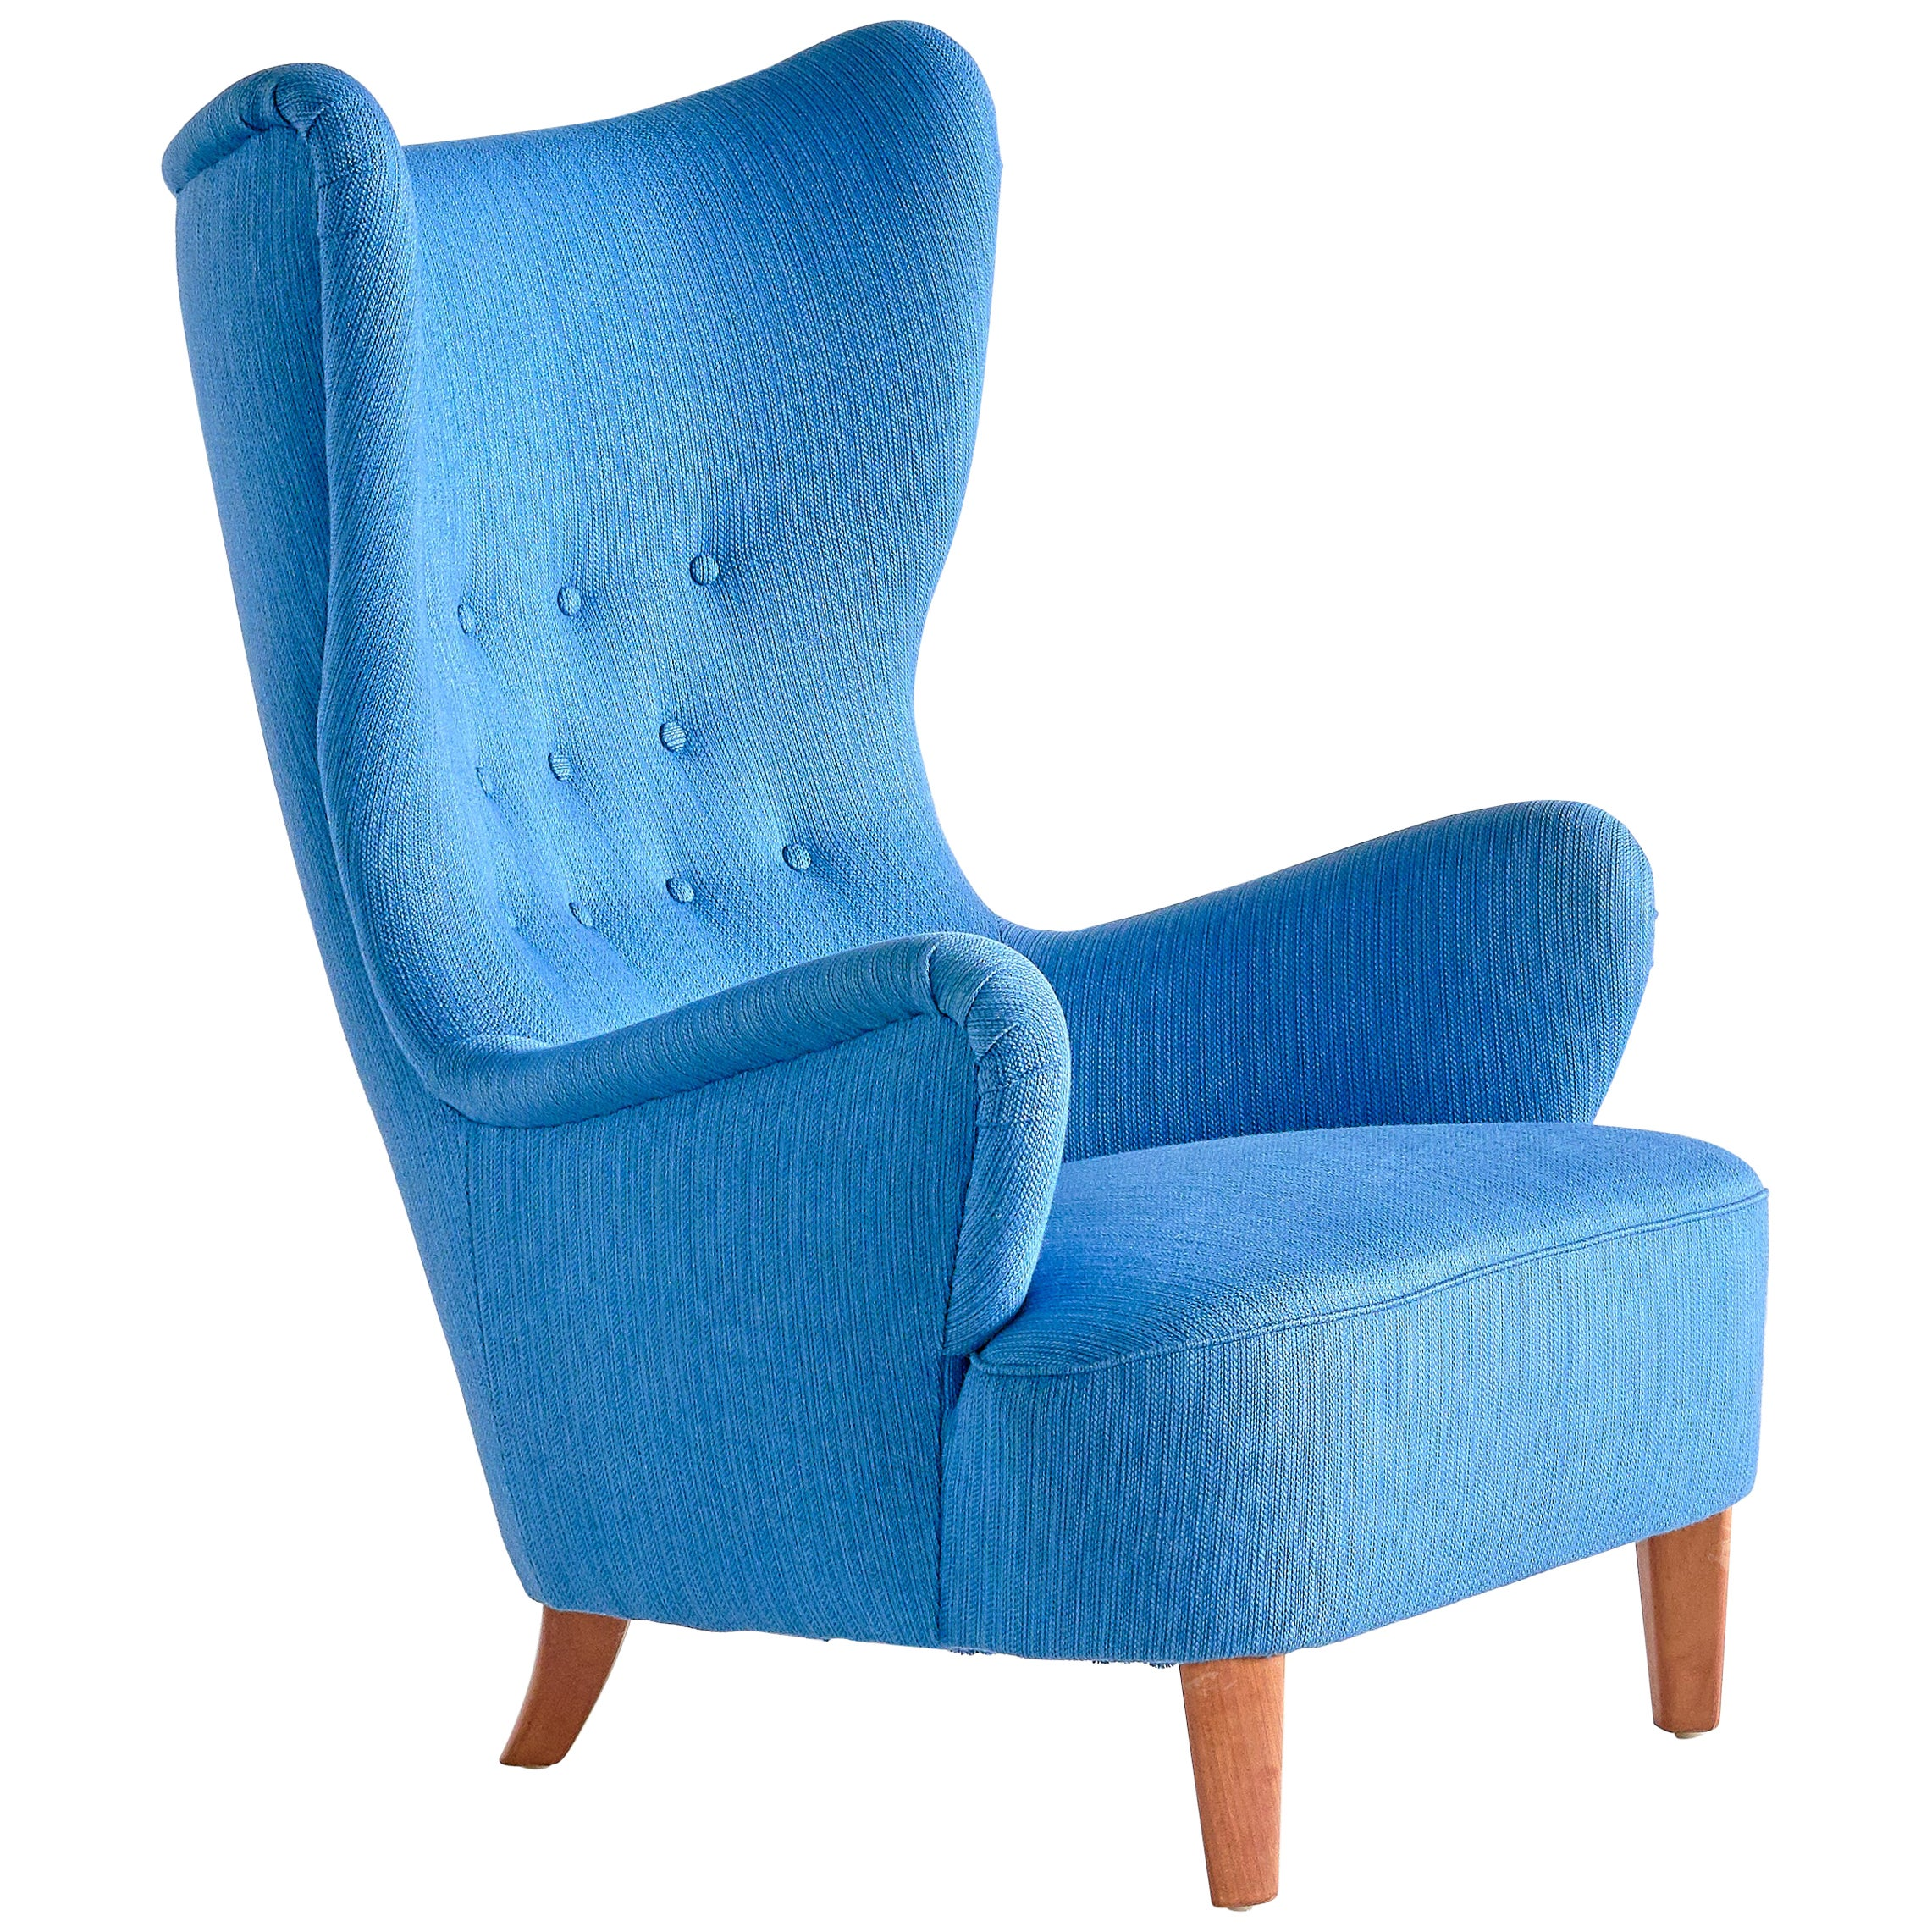 Arne Färnrot Wingback Chair In Blue Wool Fabric And Mahogany Sweden Late 1940s At 1stdibs